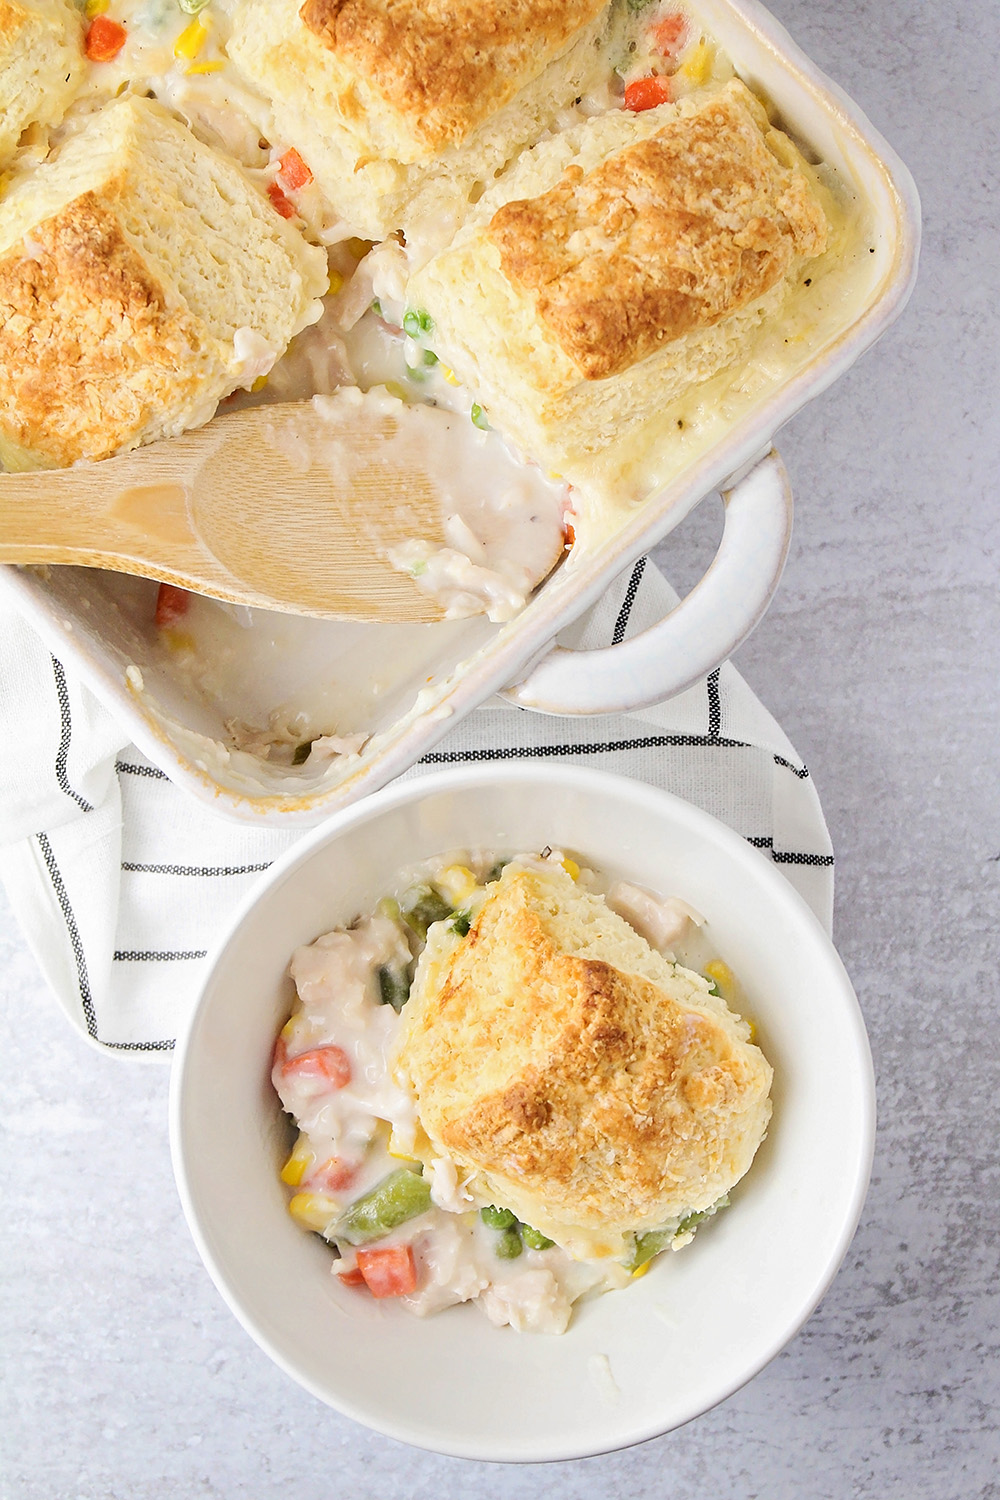 This biscuit pot pie is the epitome of comfort food! It's so delicious, and so easy to make!